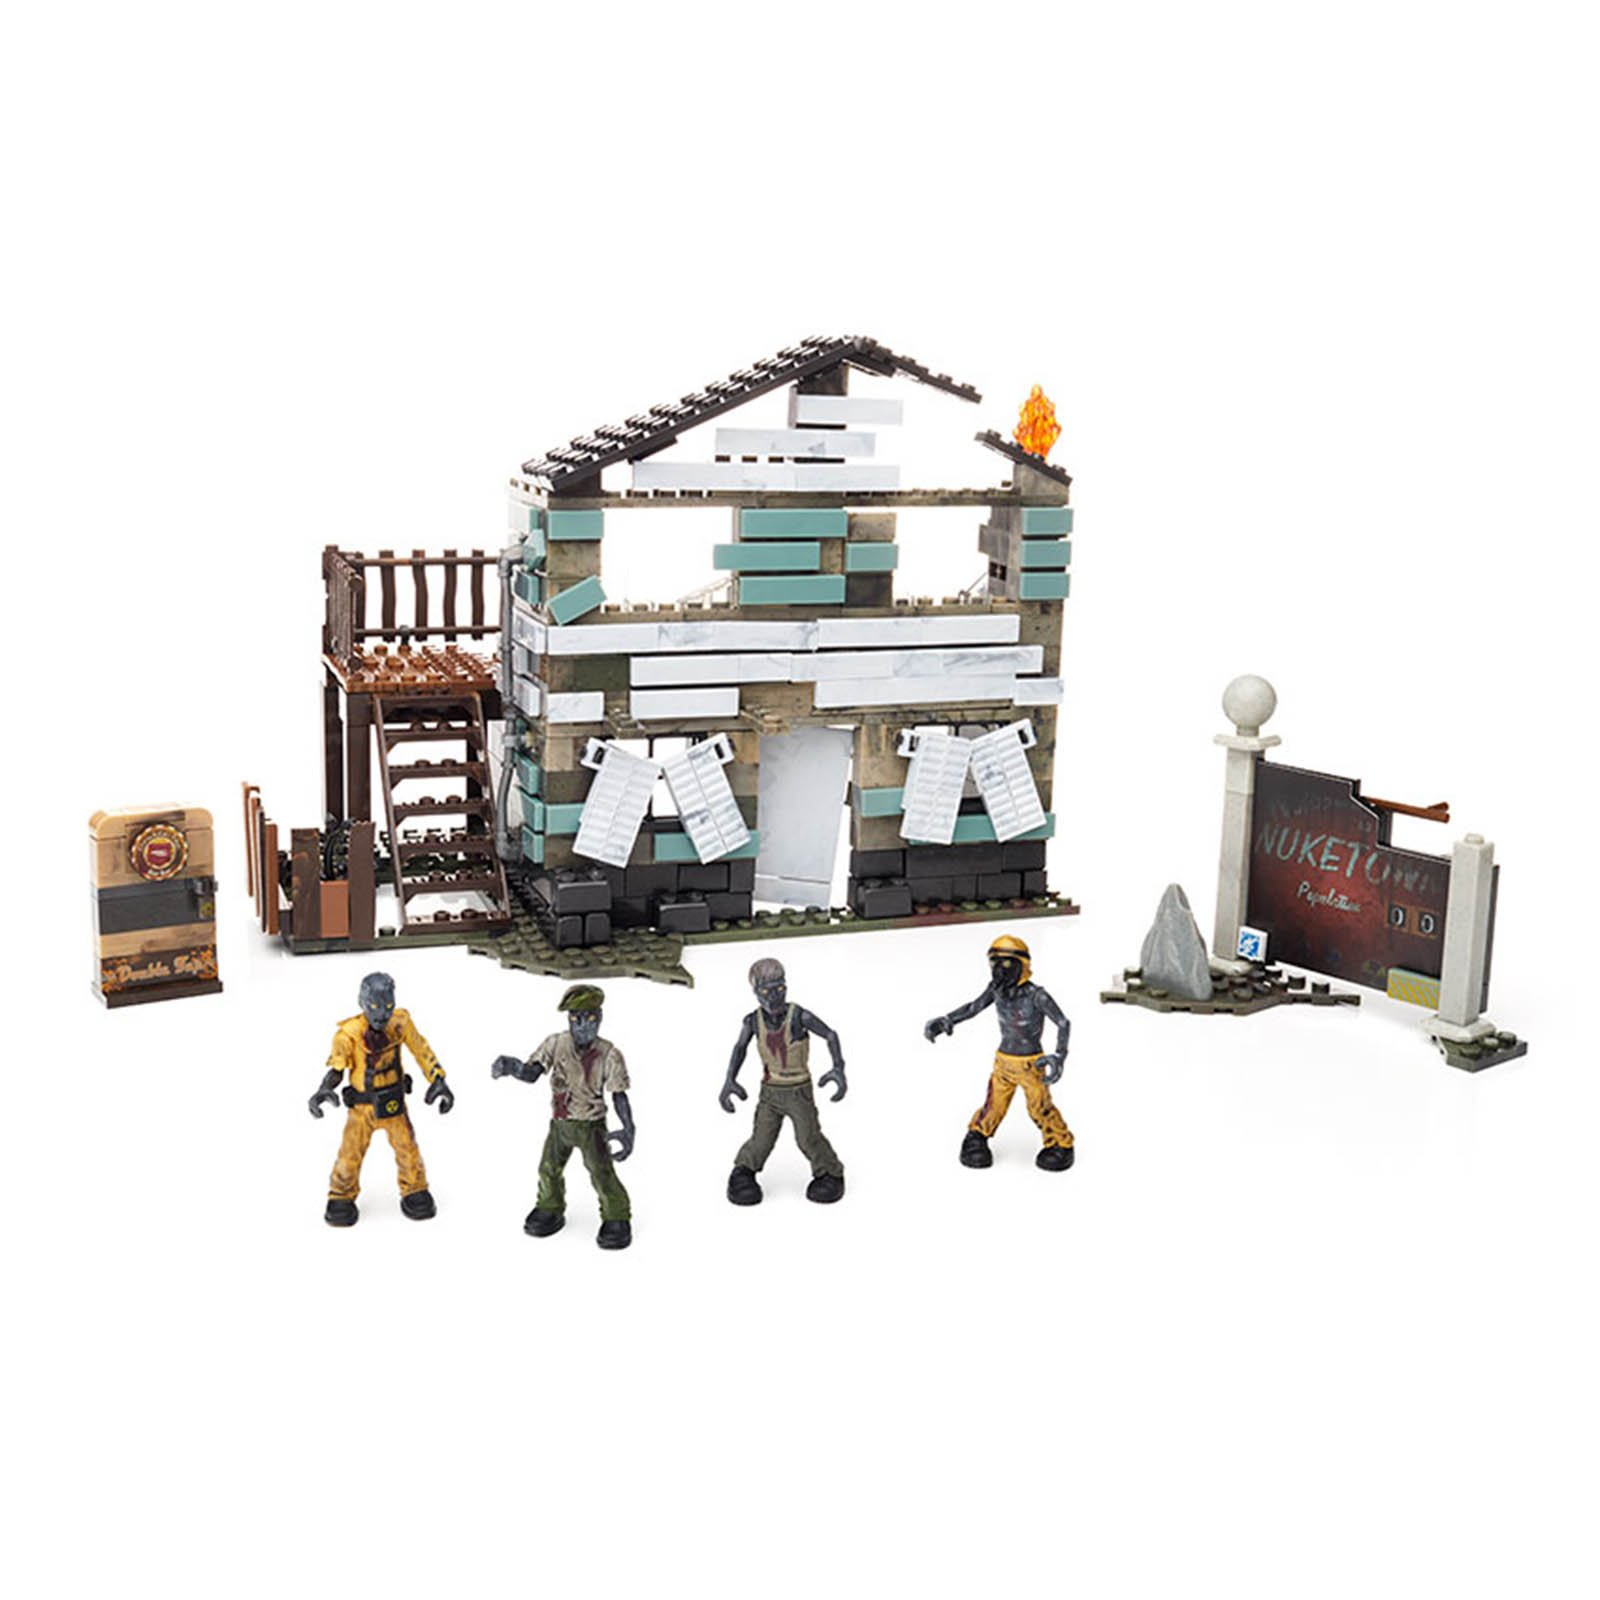 Mega Bloks Call Of Duty Zombies Nuketown Building Set by Mattel